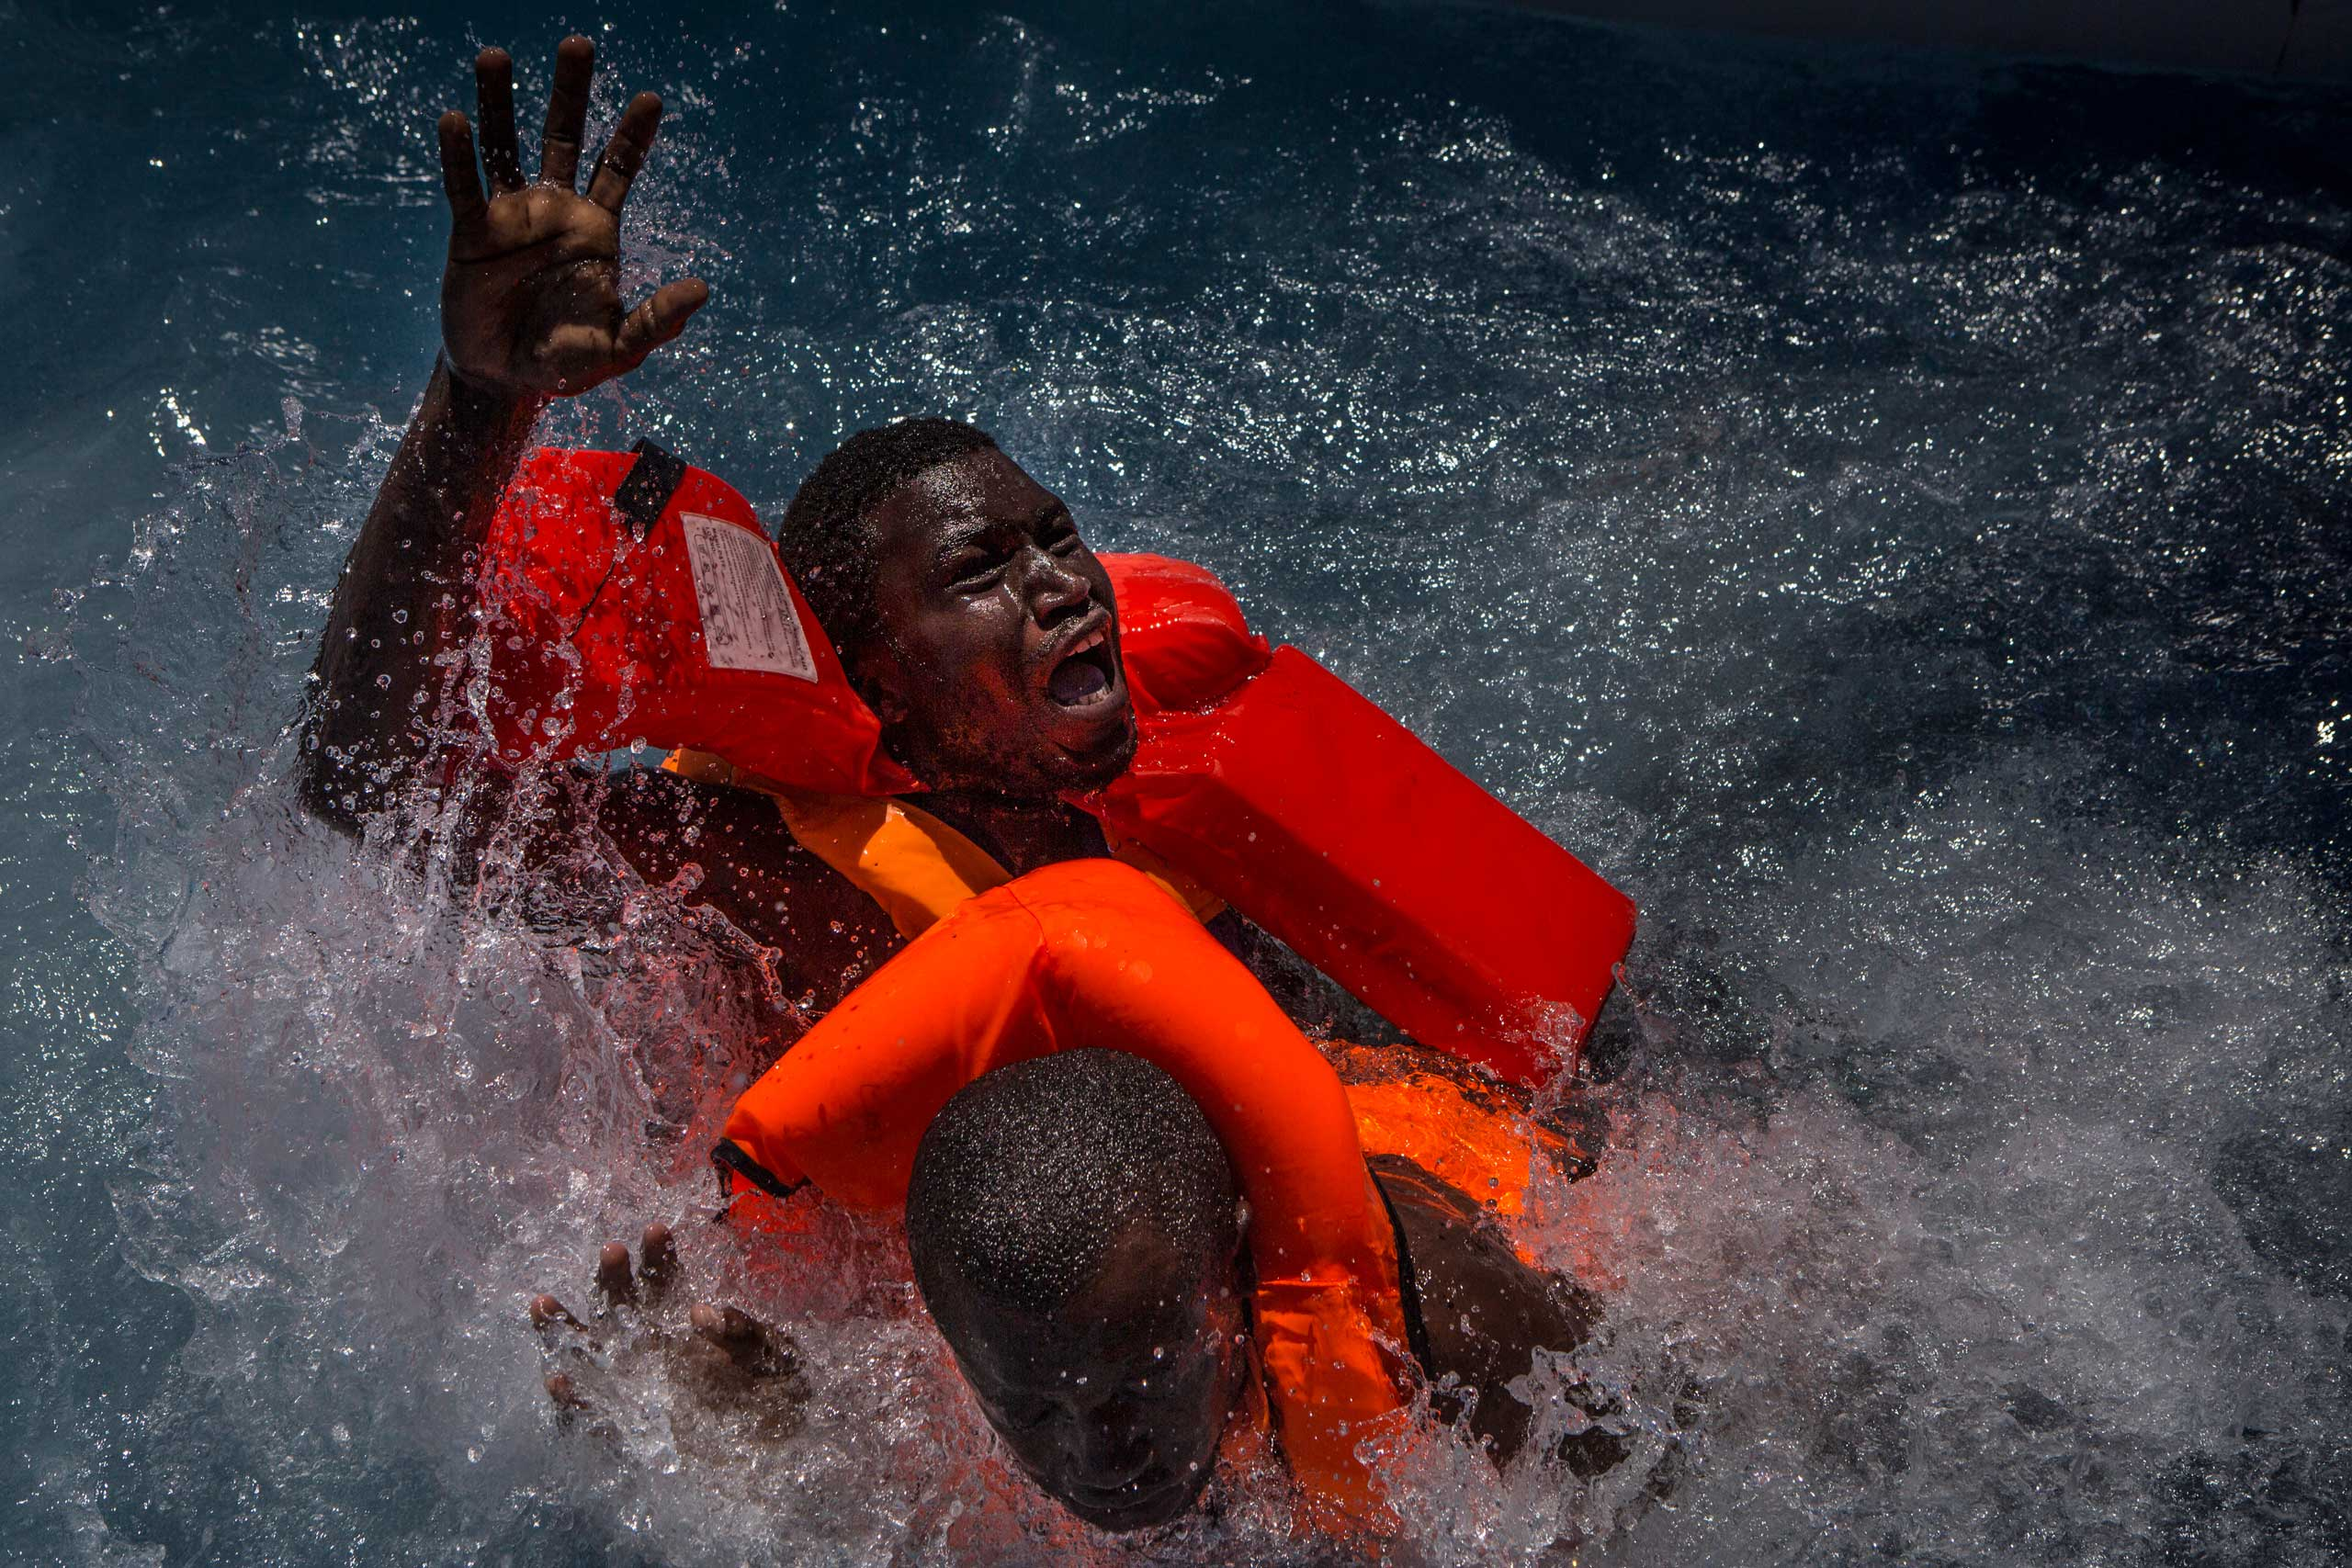 Two men panic and struggle in the water during their rescue. Their rubber boat was in distress and deflating quickly on one side, tipping many migrants in the water. They were quickly reached by rescue swimmers and brought to safety.